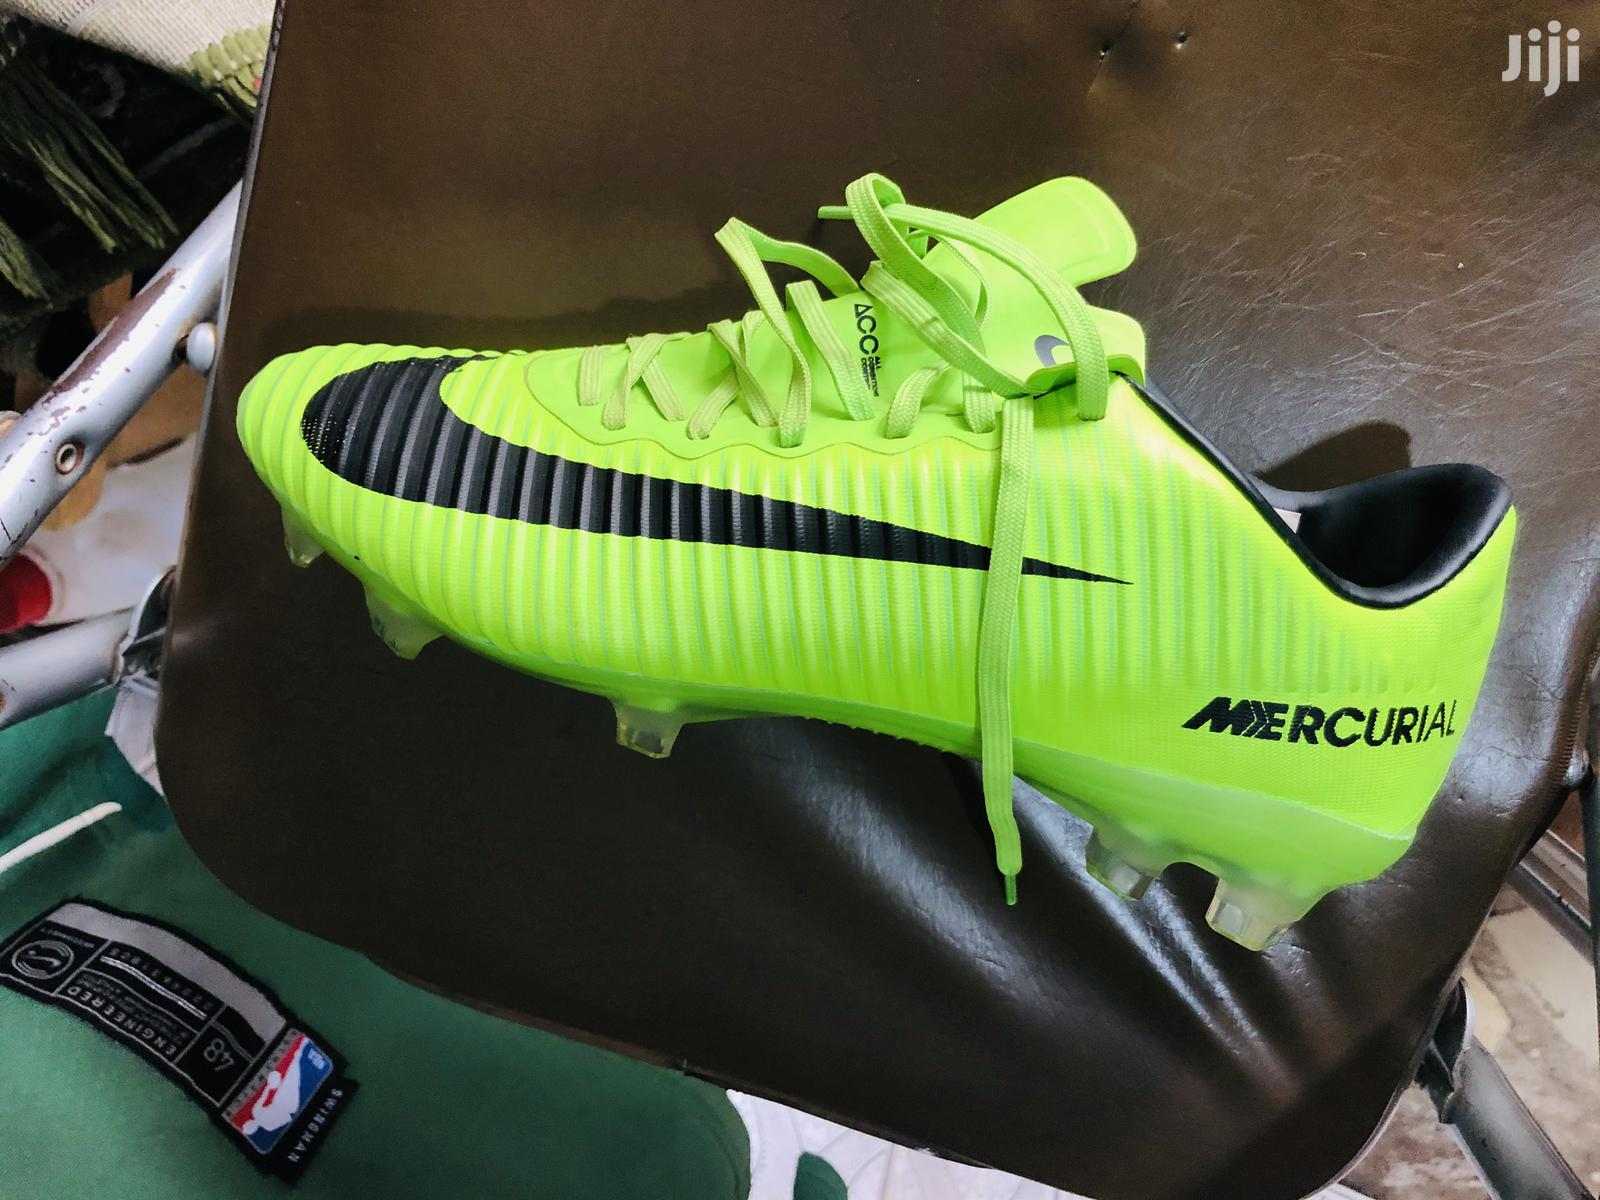 Original Soccer/Football Boots | Shoes for sale in Madina, Greater Accra, Ghana